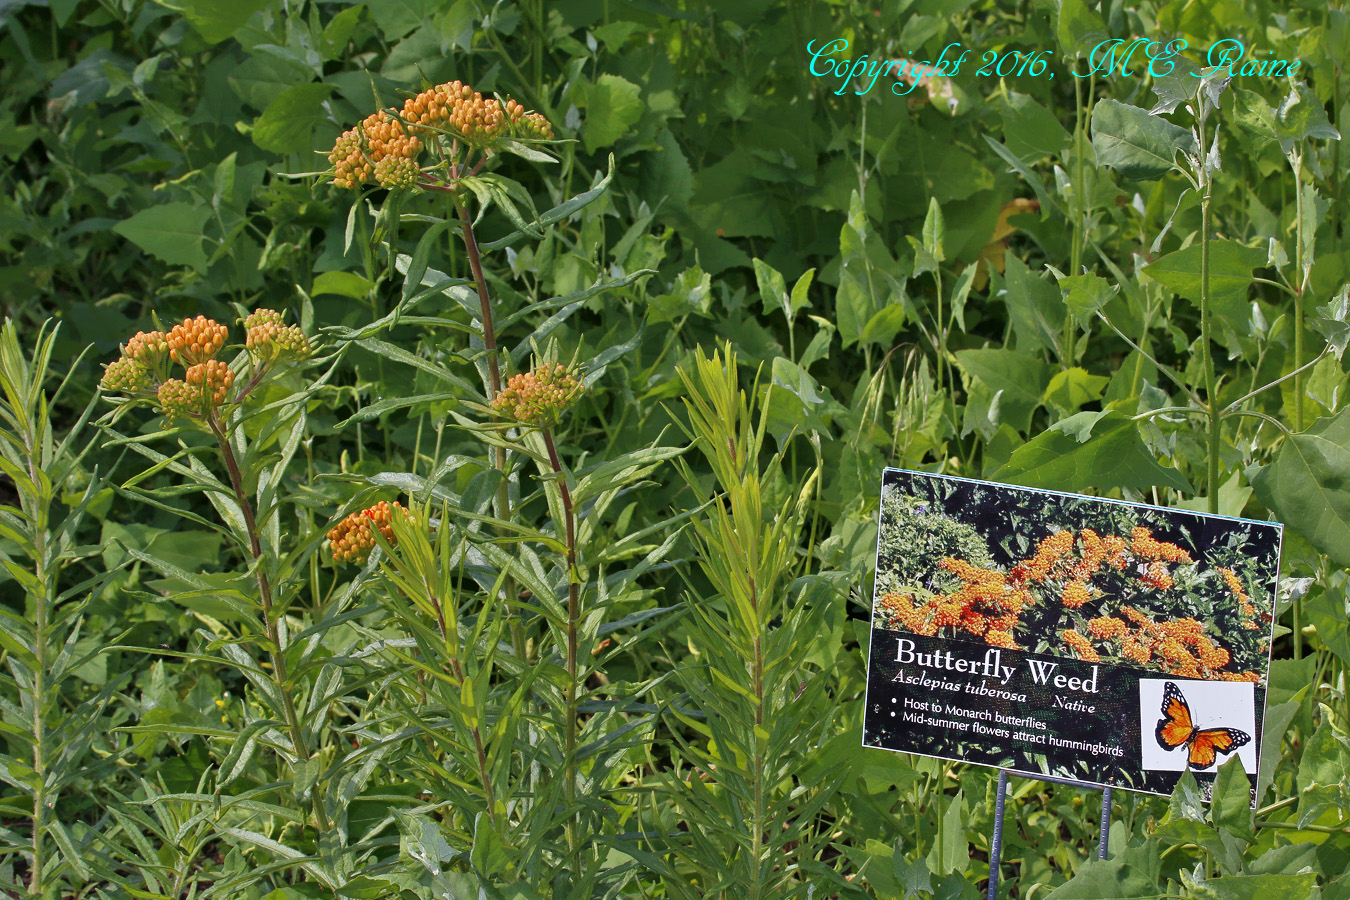 Butterfly Weed MCM 6.11.16 mickey raine